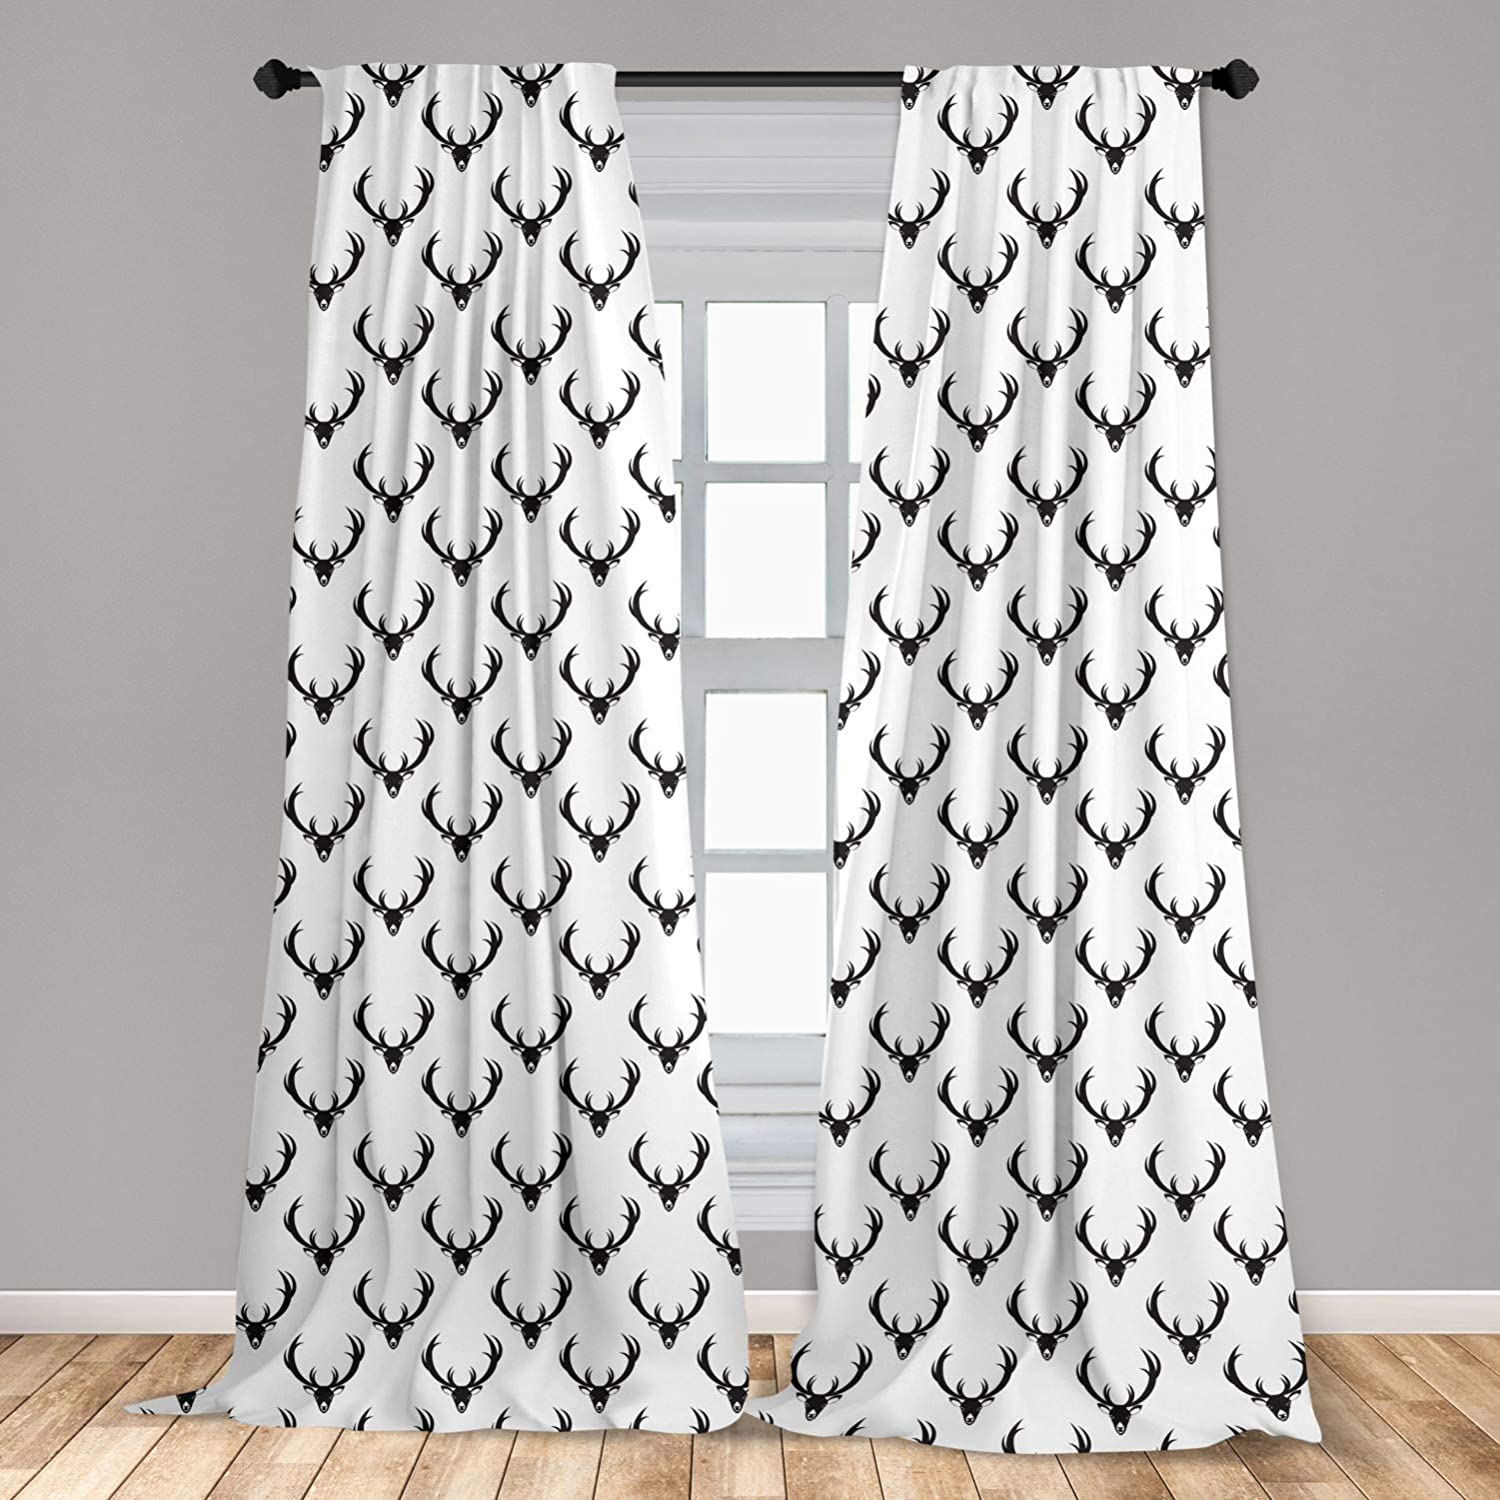 Lunarable Antlers Window Curtains, Monochrome Deer with Horn Rustic Country Life Characters Retro Graphic Design, Lightweight Decorative Panels Set of 2 with Rod Pocket, 56